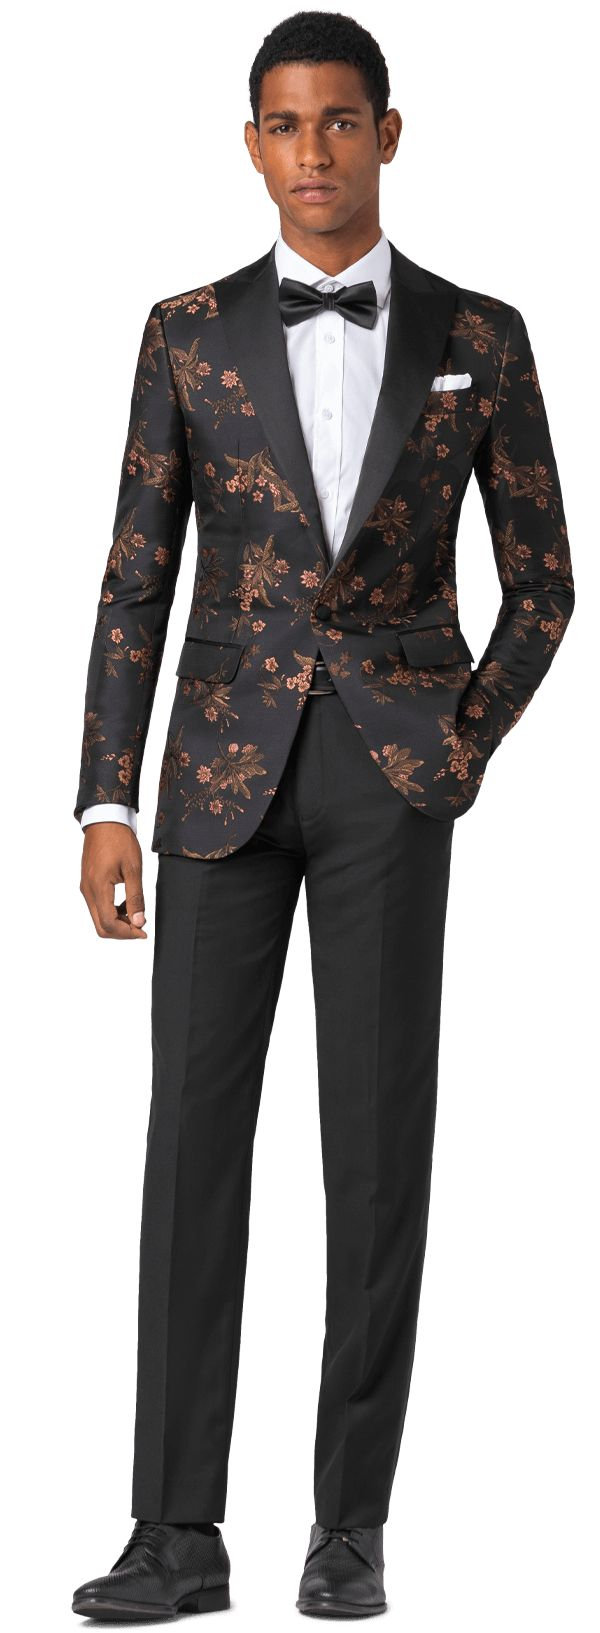 homecoming suit